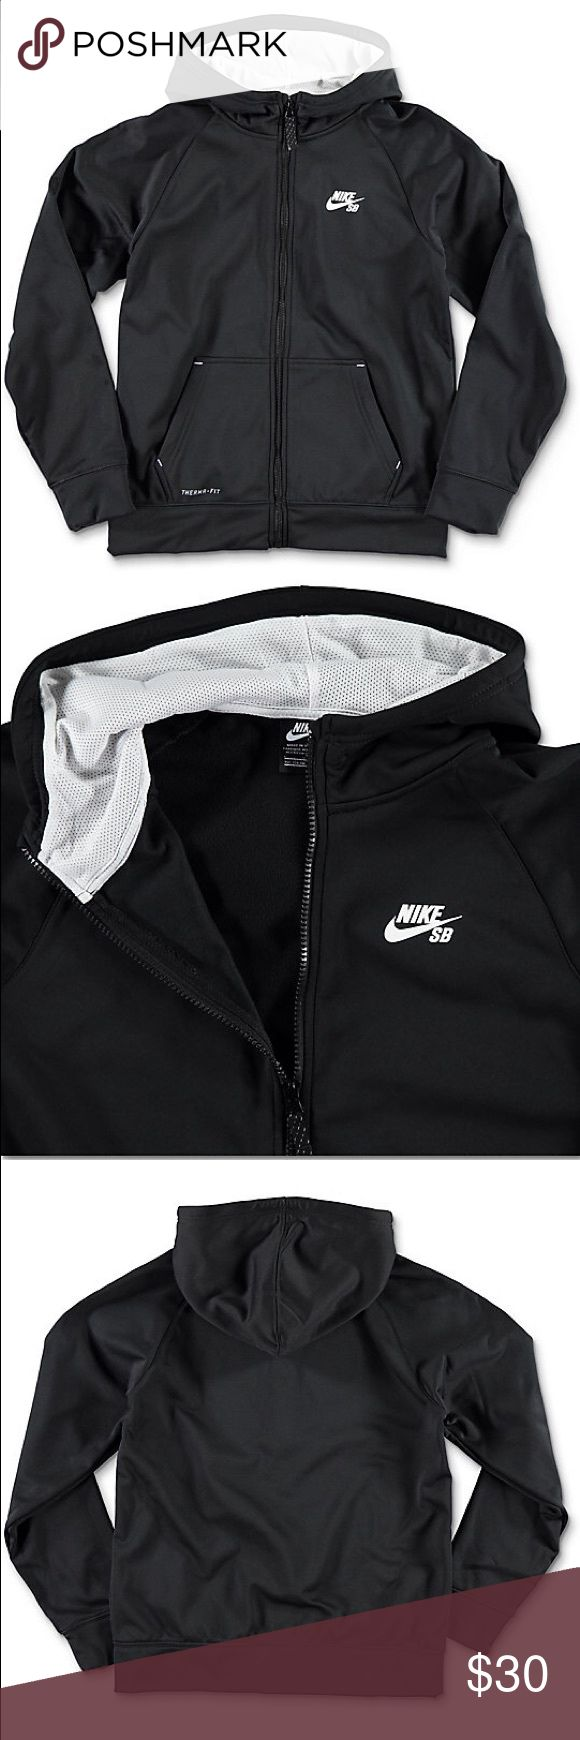 Therma-Fit Black Boys Zip Up Hoodie by Nike SB. Excellent used condition 👌🏼 Solid Therma-Fit Black Boys Zip Up Hoodie by Nike SB. Youth sizing. Black zip up closure. Screen print logo graphic on front left chest. White mesh lined hood. Two front hand pockets. Warm fleece lined body and sleeves. 100% polyester. Turn inside out, machine wash cold, tumble dry low. Imported. Nike Jackets & Coats